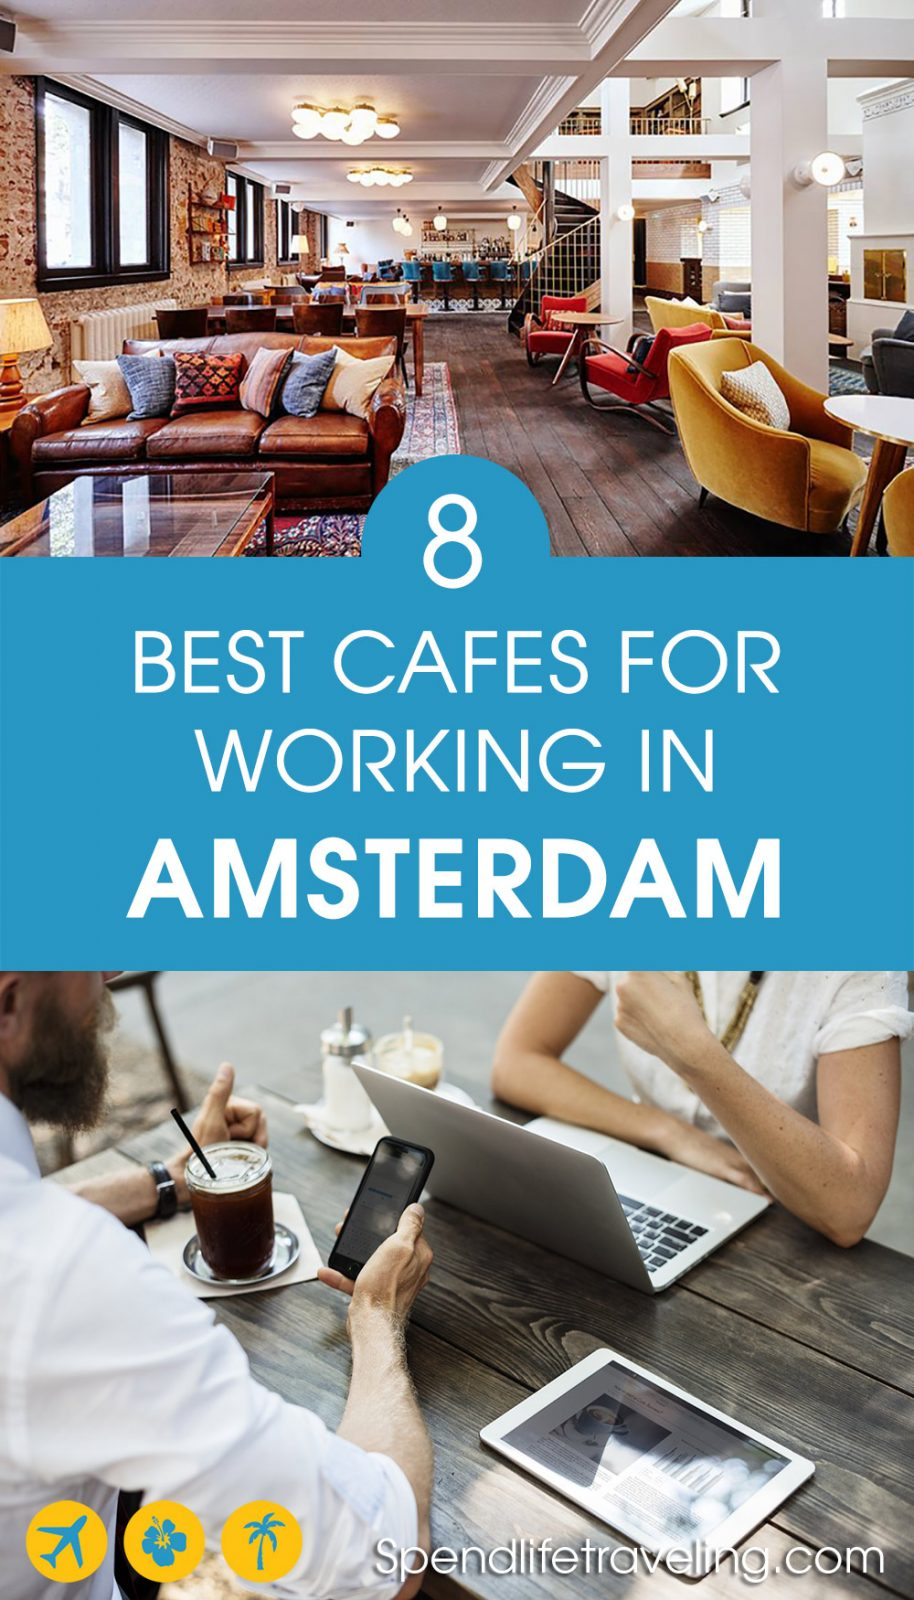 Are you looking for a cozy cafe with good Wifi to work from? Whether you work remotely, are a digital nomad or just need a break from the office, these are 8 of the best cafes for working in Amsterdam, the Netherlands. #Amsterdam #workremotely #bestcafes #traveltips